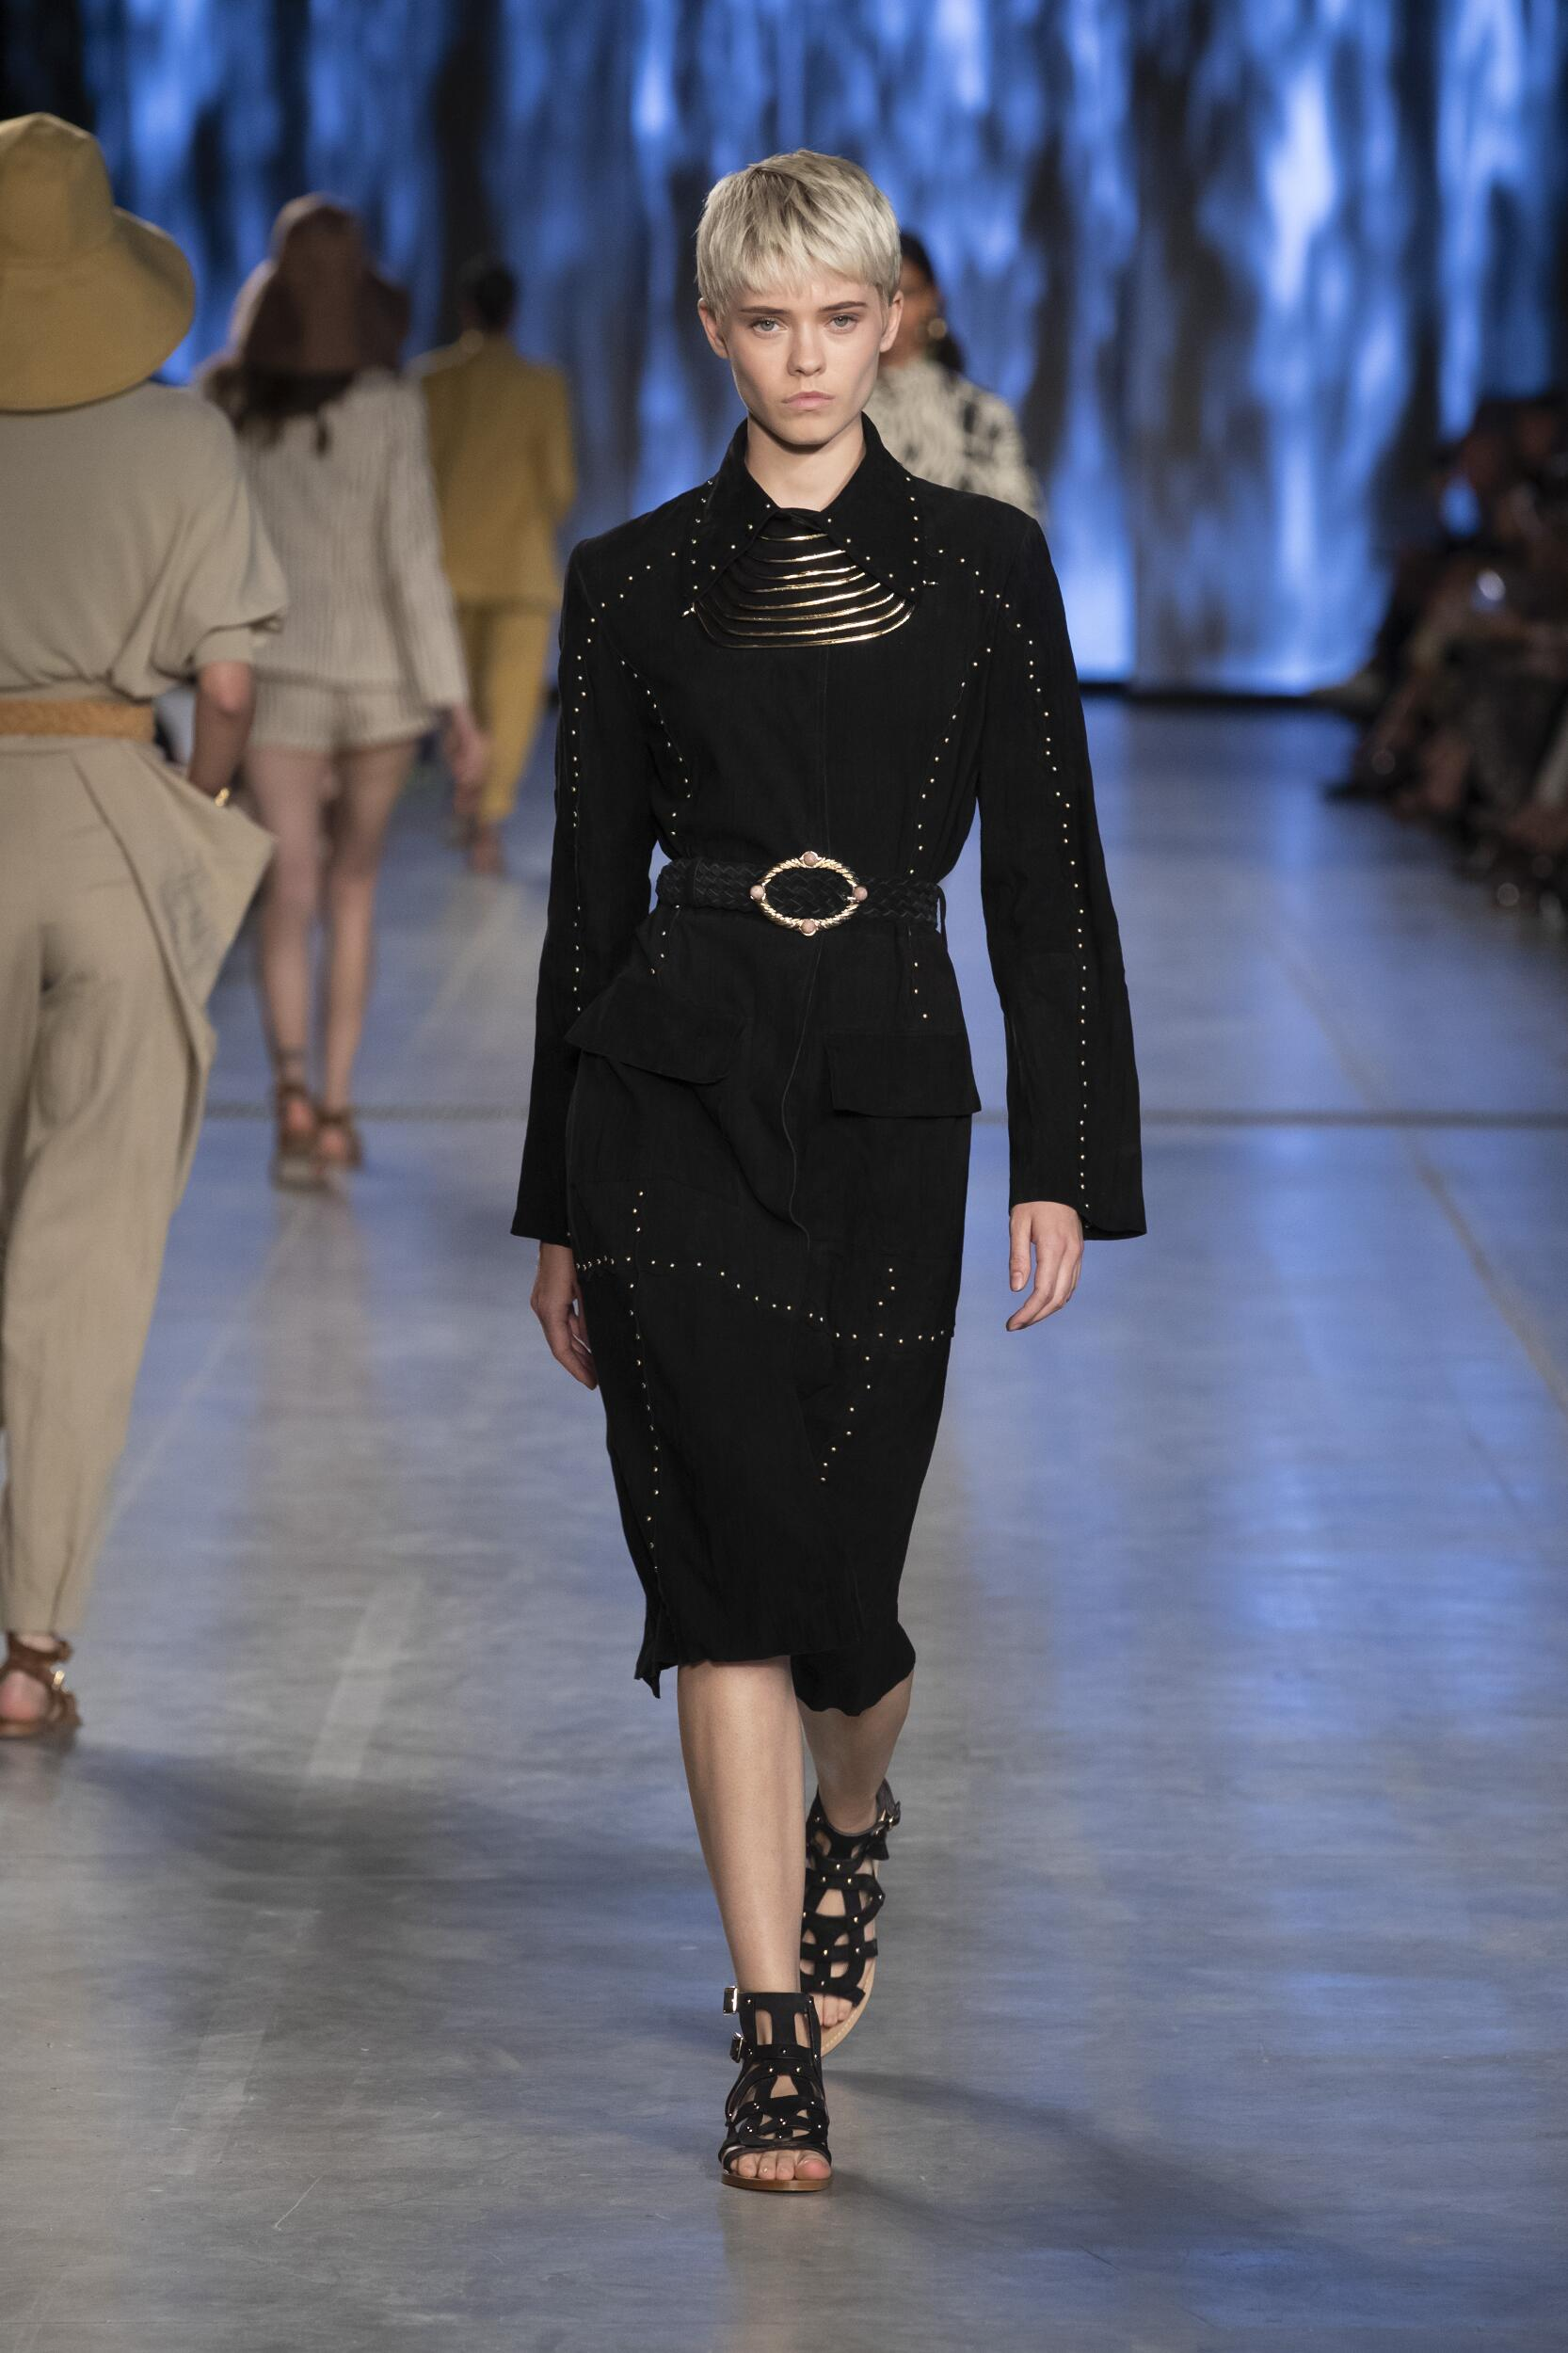 2020 Catwalk Alberta Ferretti Fashion Show Summer